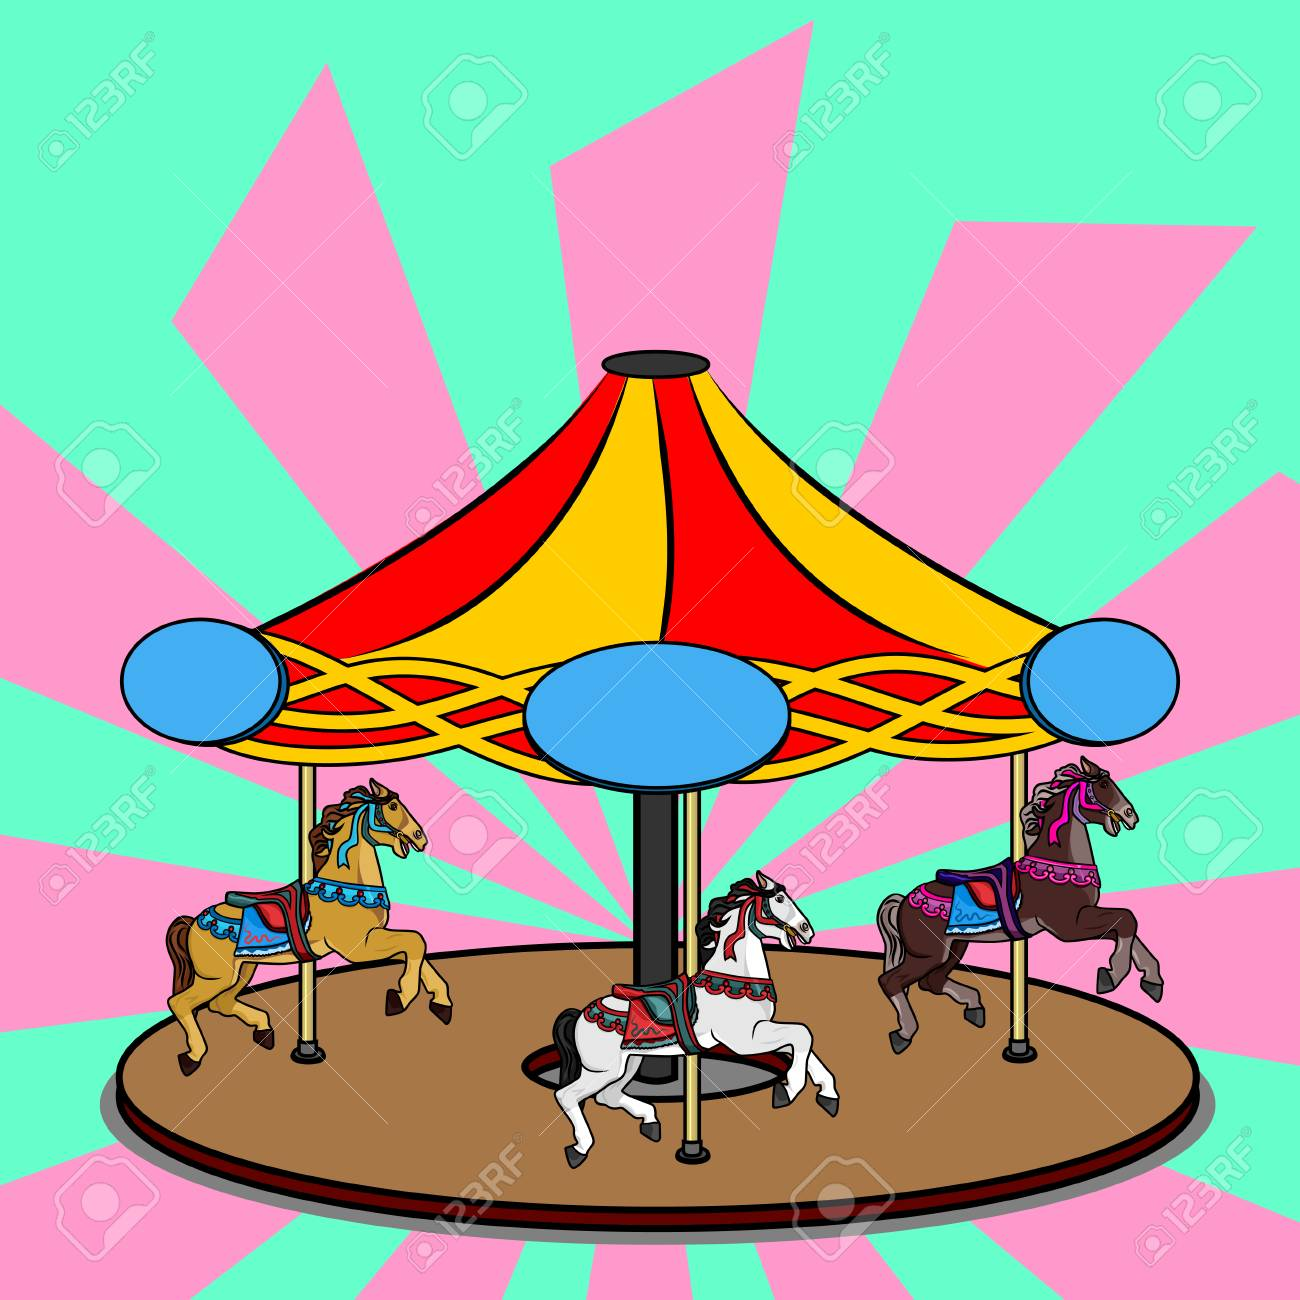 hight resolution of full color vector illustration of a carousel with three photorealistic horses bright colorful clipart